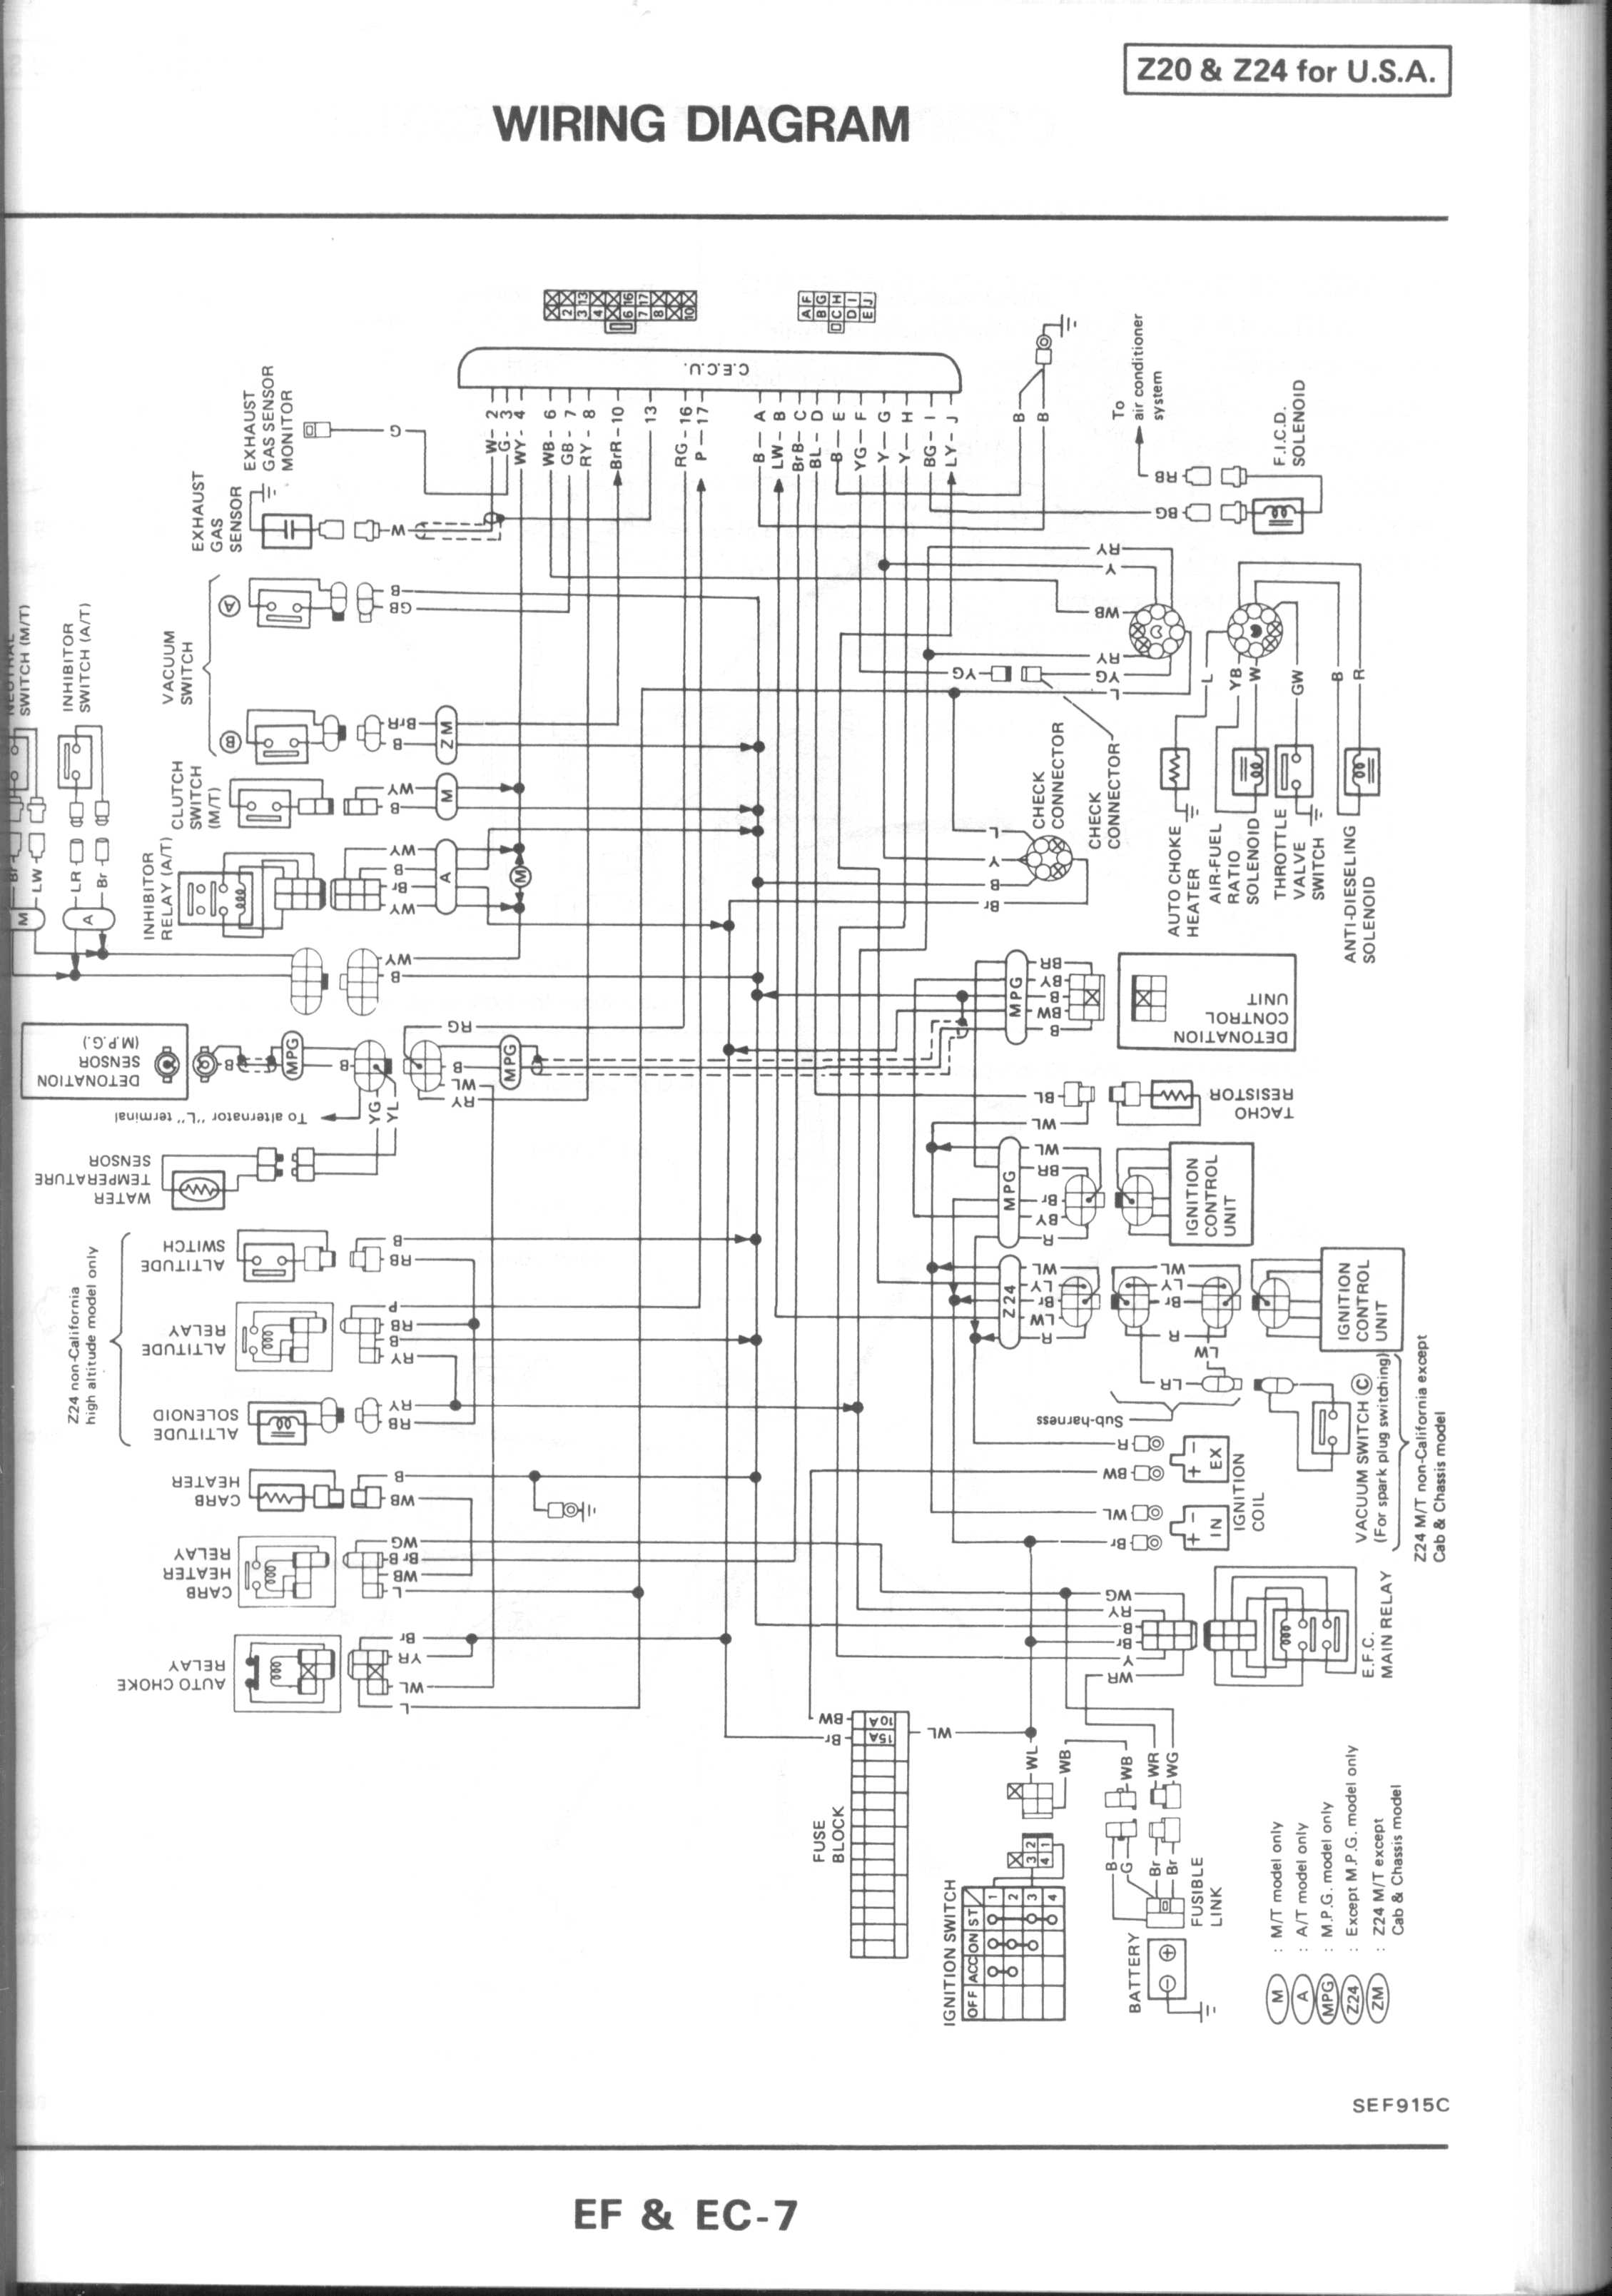 Wiring Diagram For Nissan Navara D21 Wiring Diagram Data Val